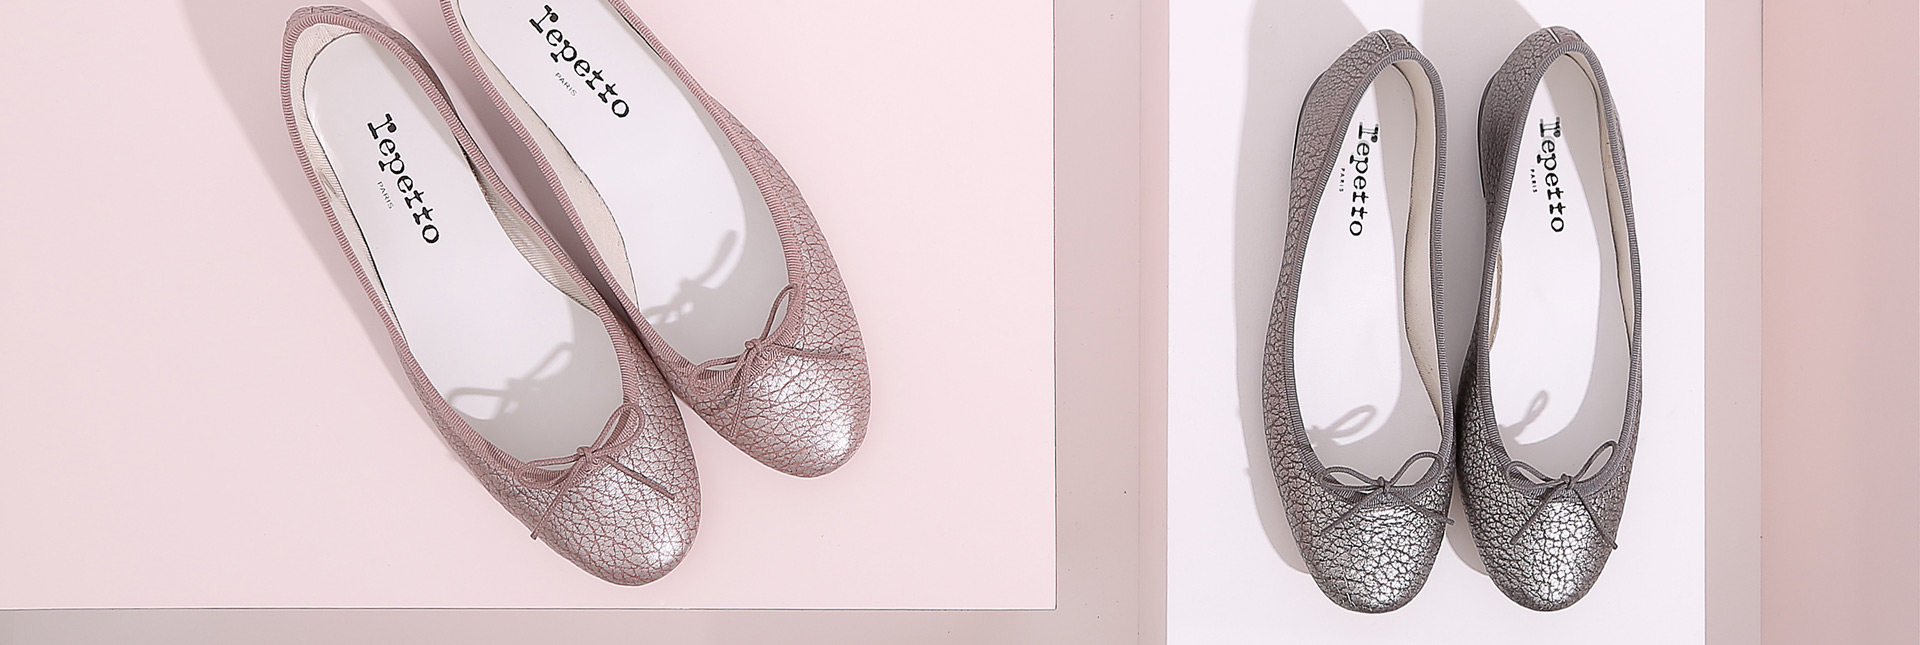 Nouvelles chaussures - Repetto